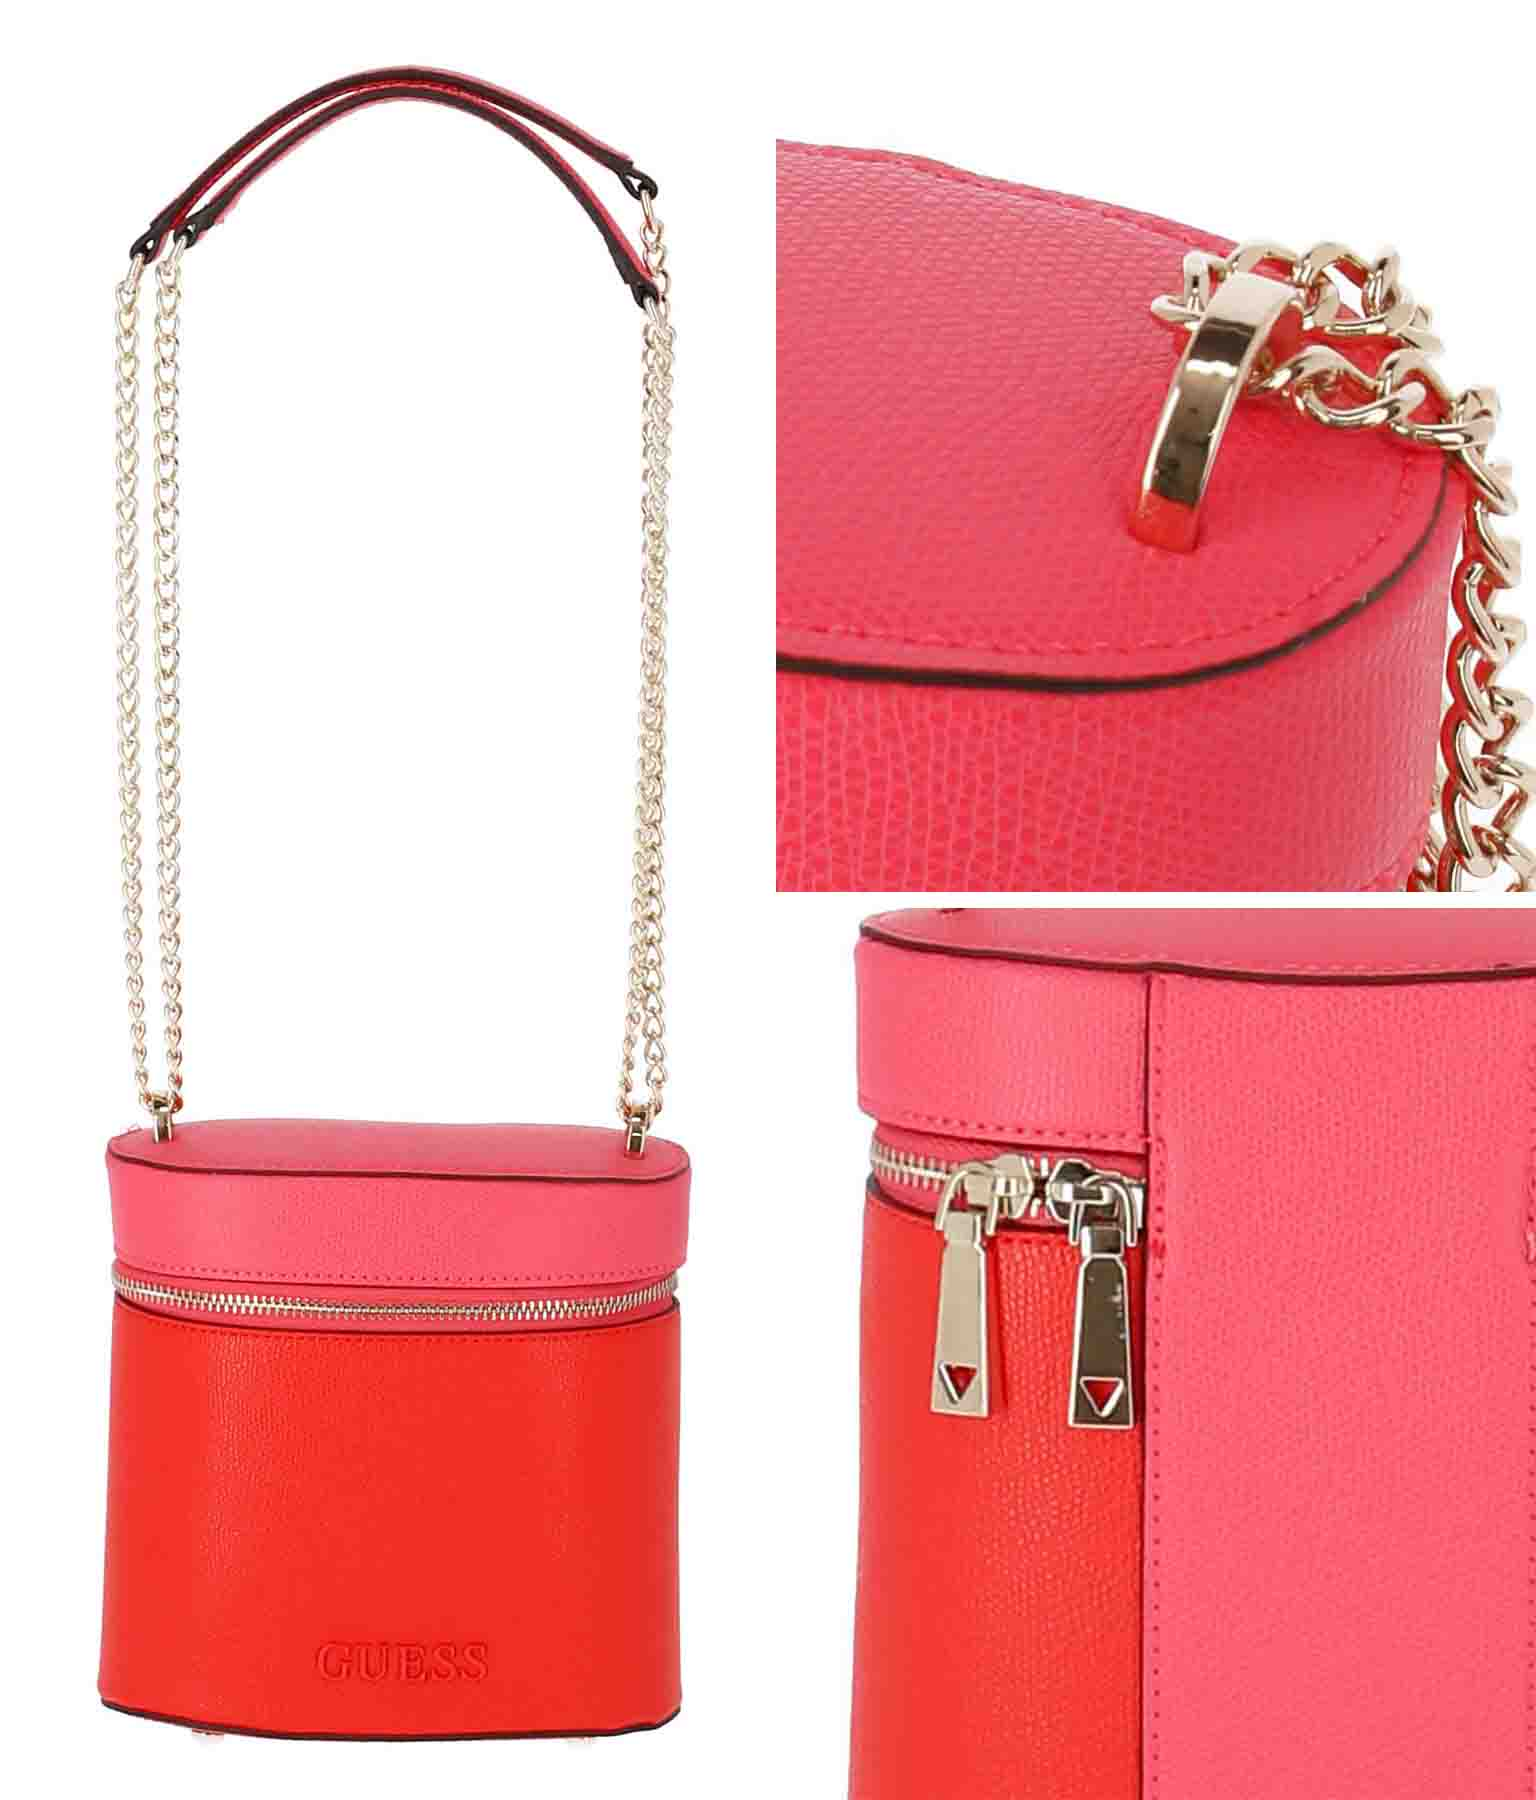 NEREA CANNISTER(バッグ・鞄・小物/ショルダーバッグ) | GUESS